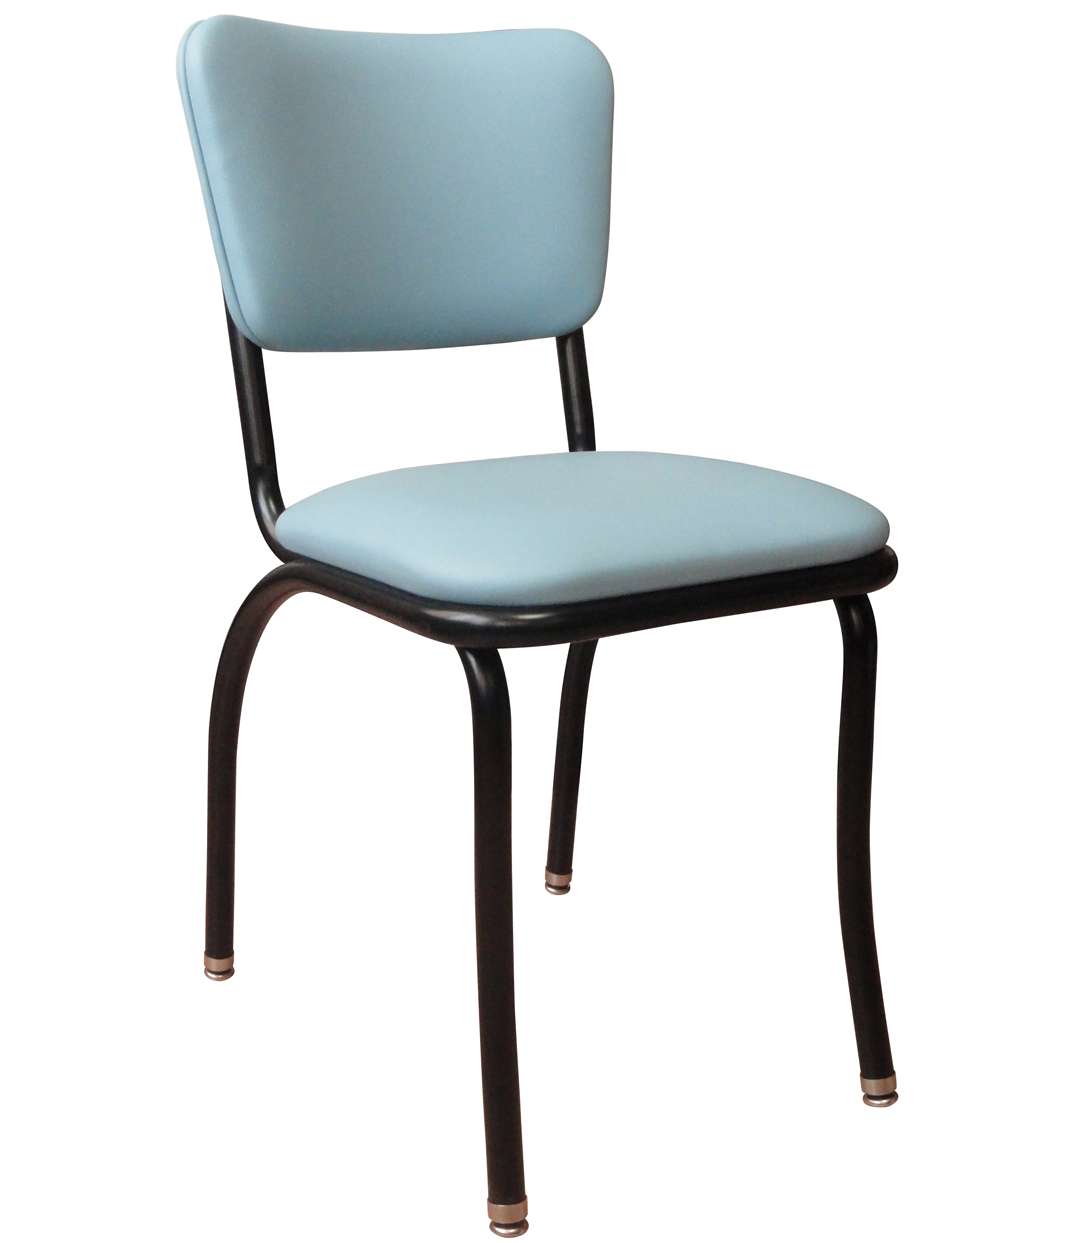 Retro Dining Chair 921 New Retro Dining Classic Curved Back Diner Chair